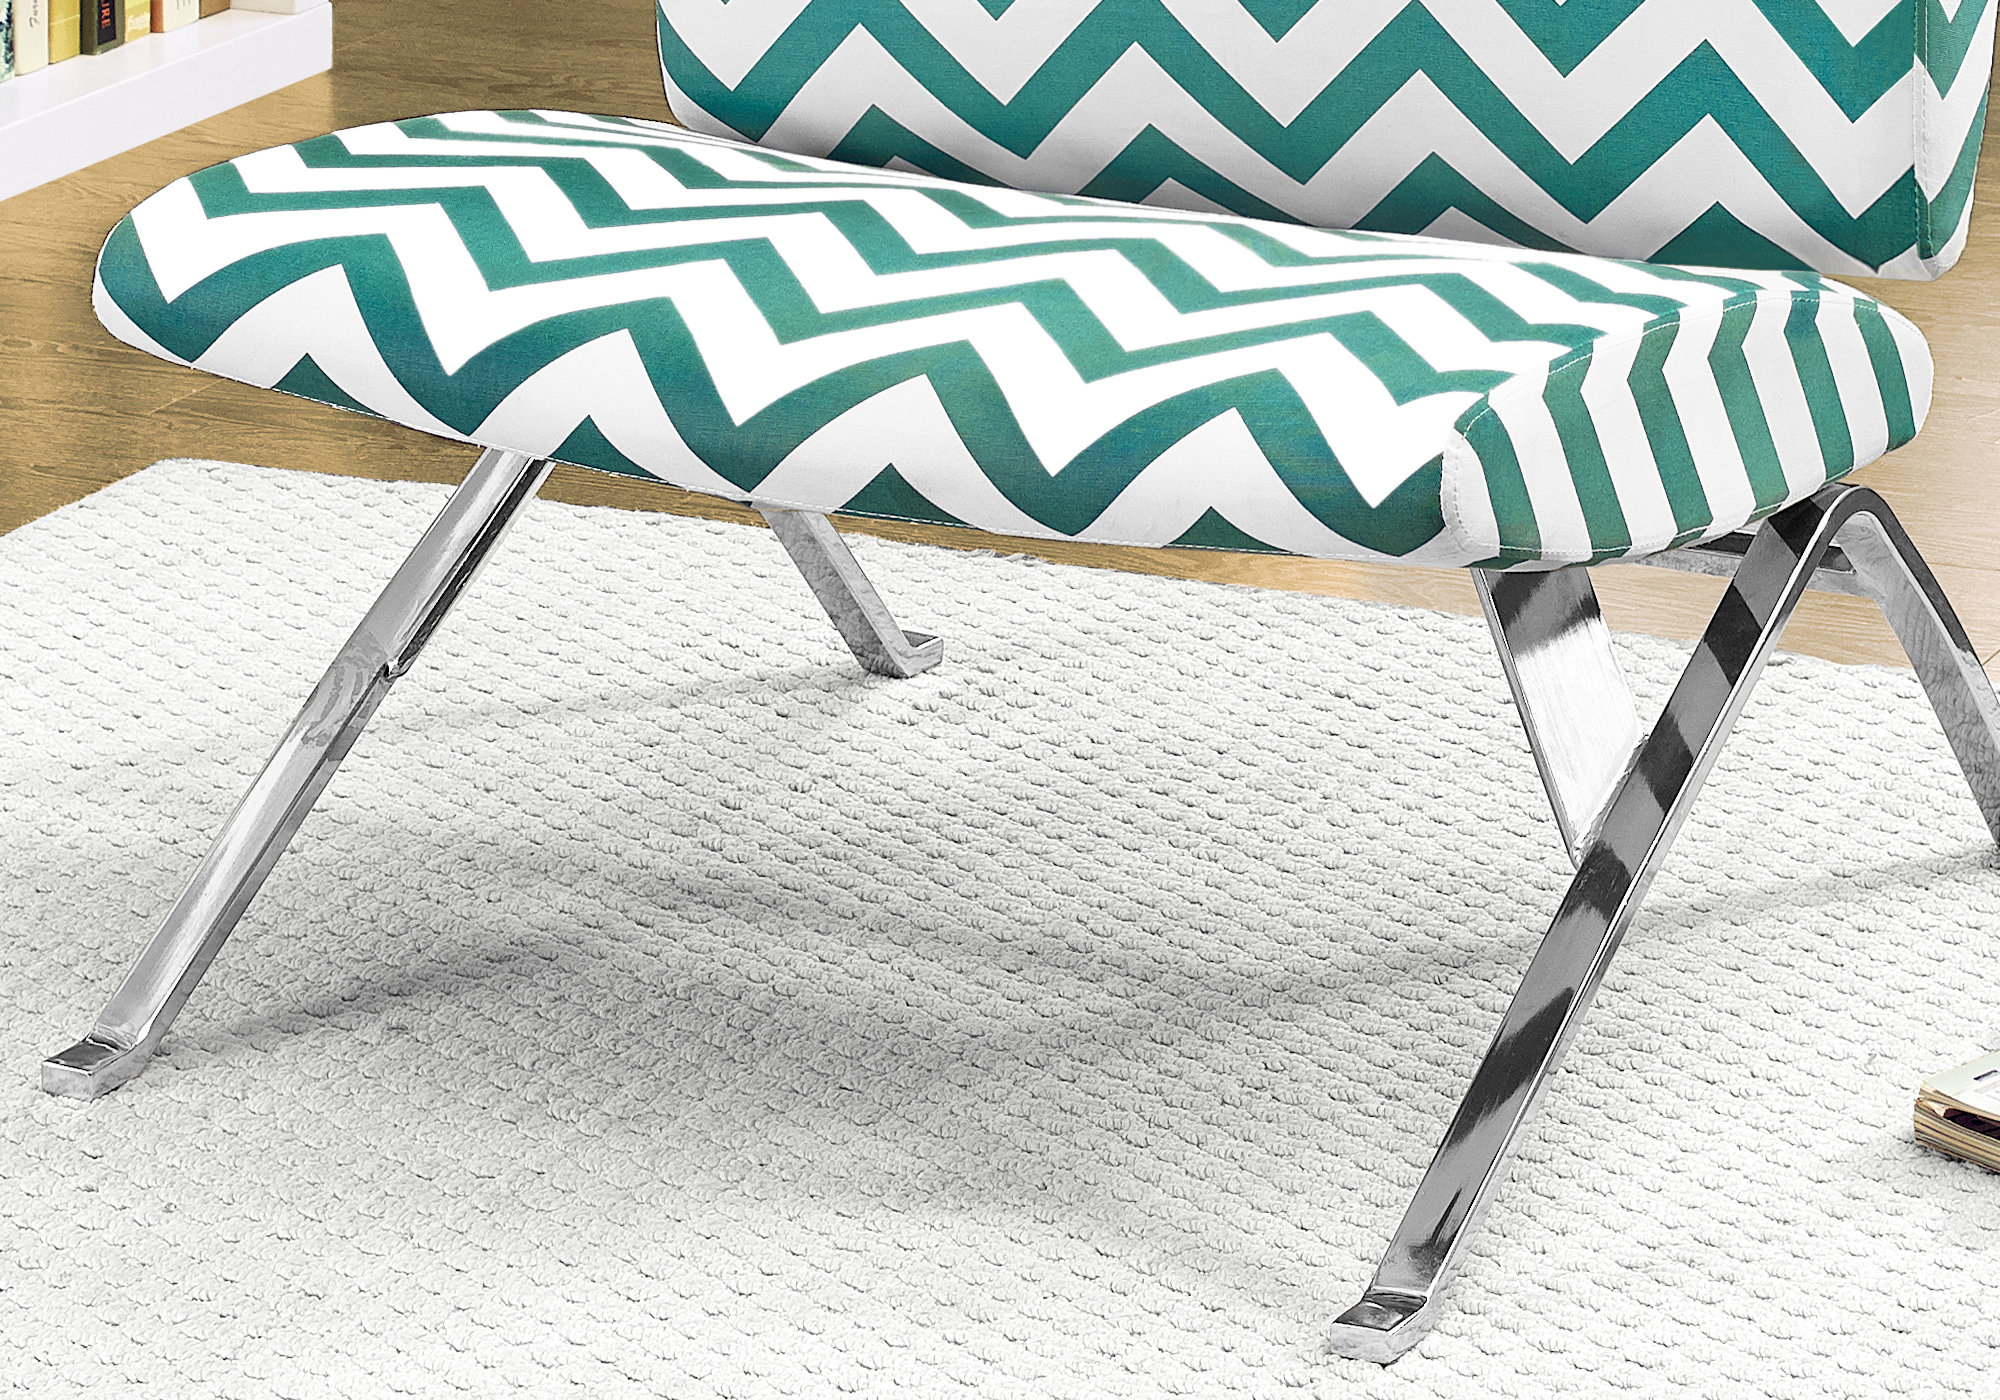 Groovy Accent Chair Teal Chevron Fabric Chrome Metal Ocoug Best Dining Table And Chair Ideas Images Ocougorg